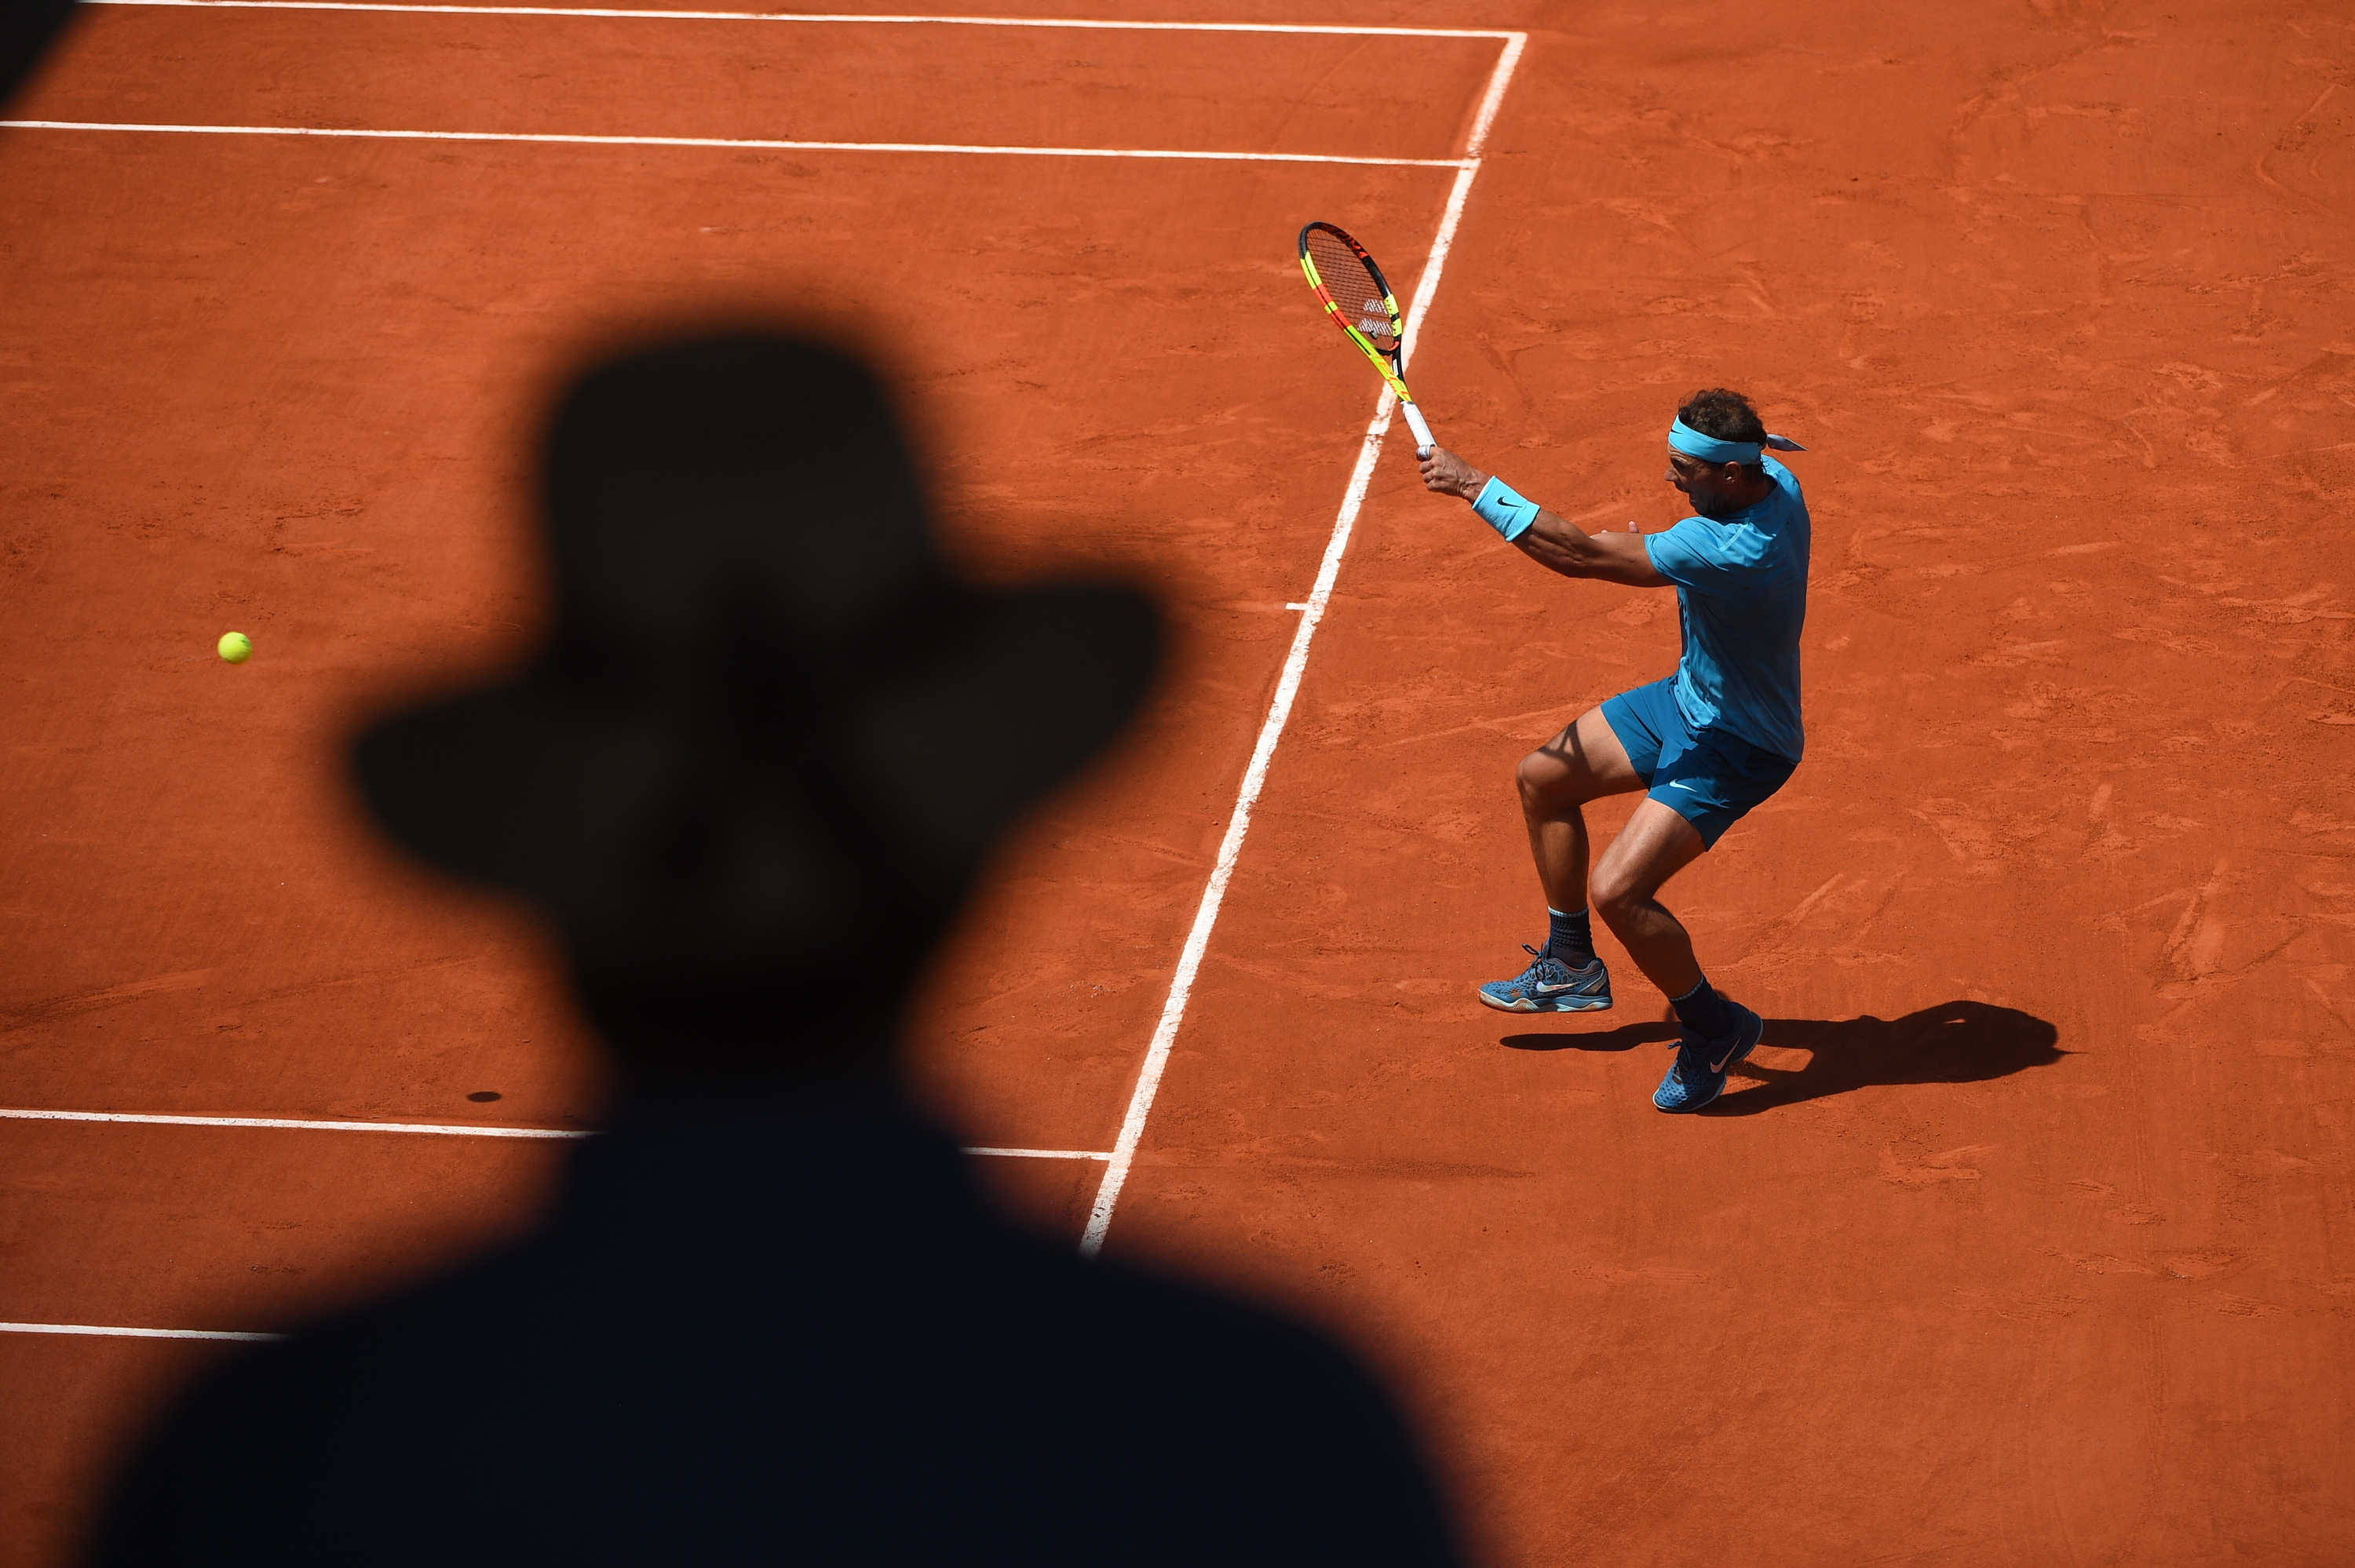 Rafael Nadal hitting a forehand at Roland-Garros 2018 in front of a shadow.